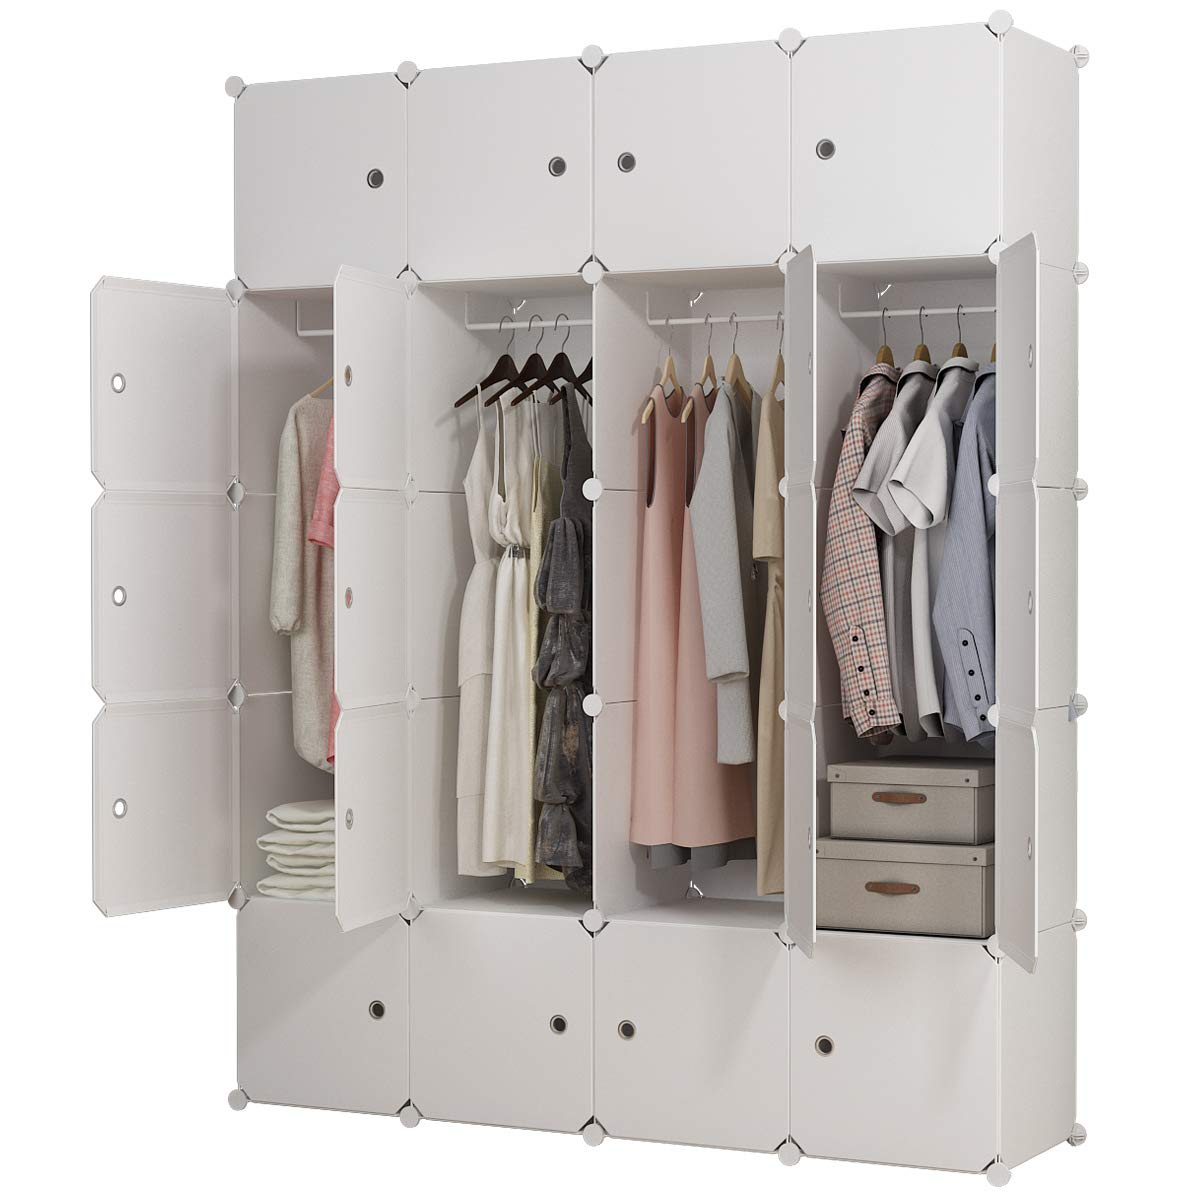 KOUSI Portable Clothes Closet Wardrobe Bedroom Armoire Dresser Cube Storage Organizer, Capacious & Customizable, White, 8 Cubes+4 Hanging Sections